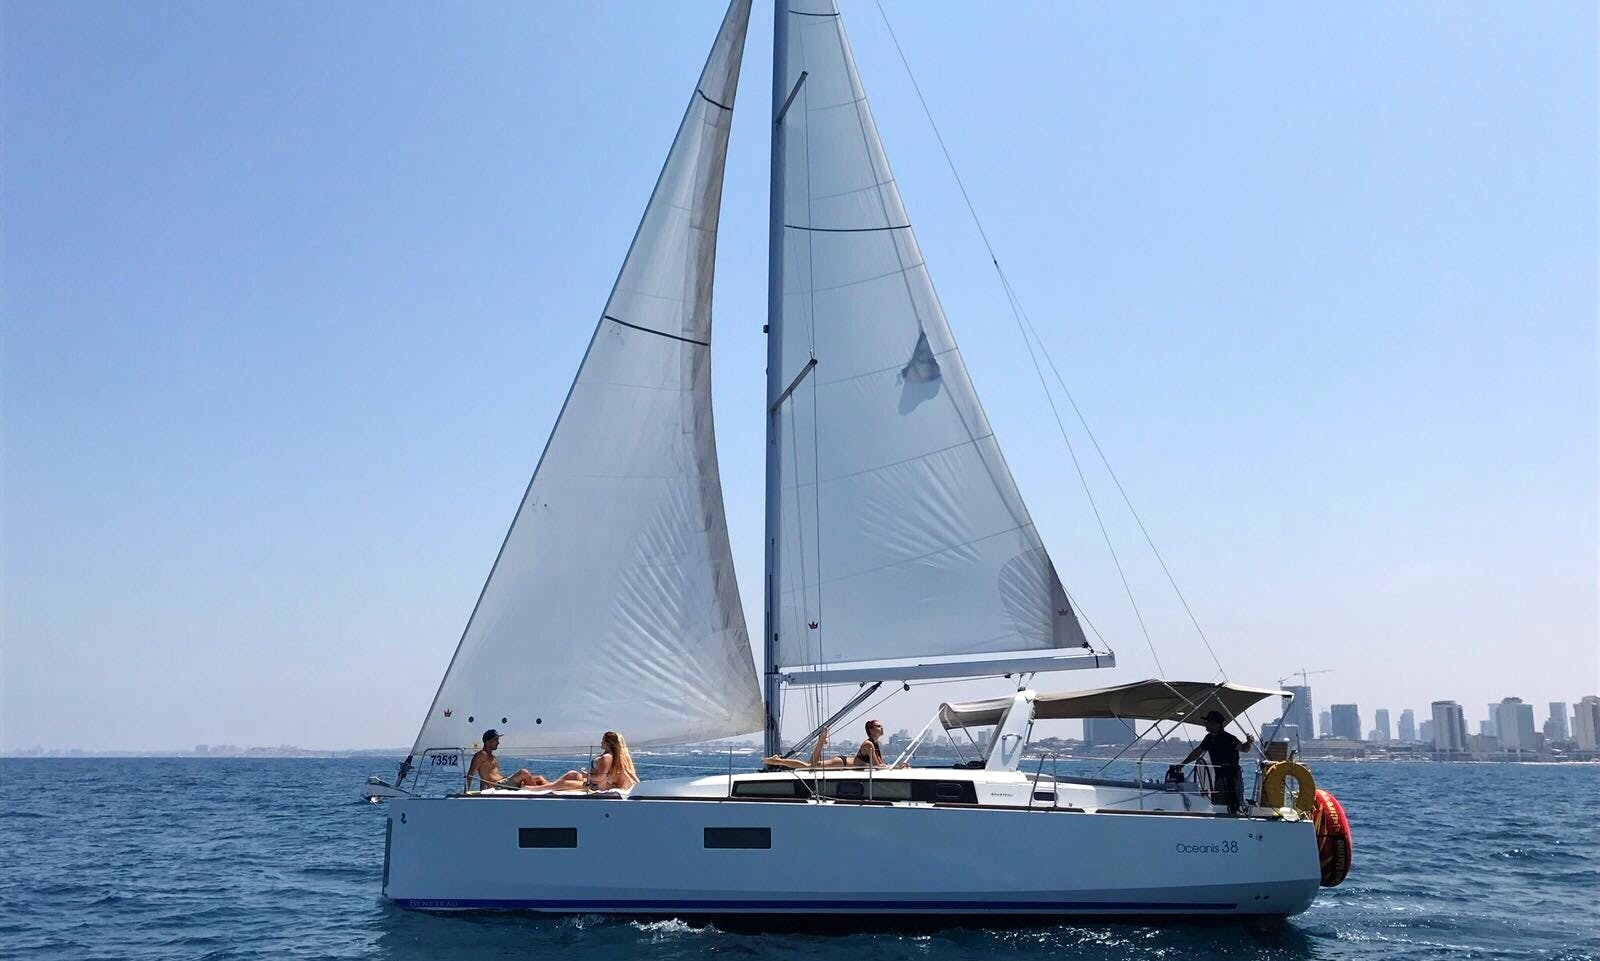 2014 Beneteau Oceanis Yacht for Rent in Tel Aviv-Yafo, Israel